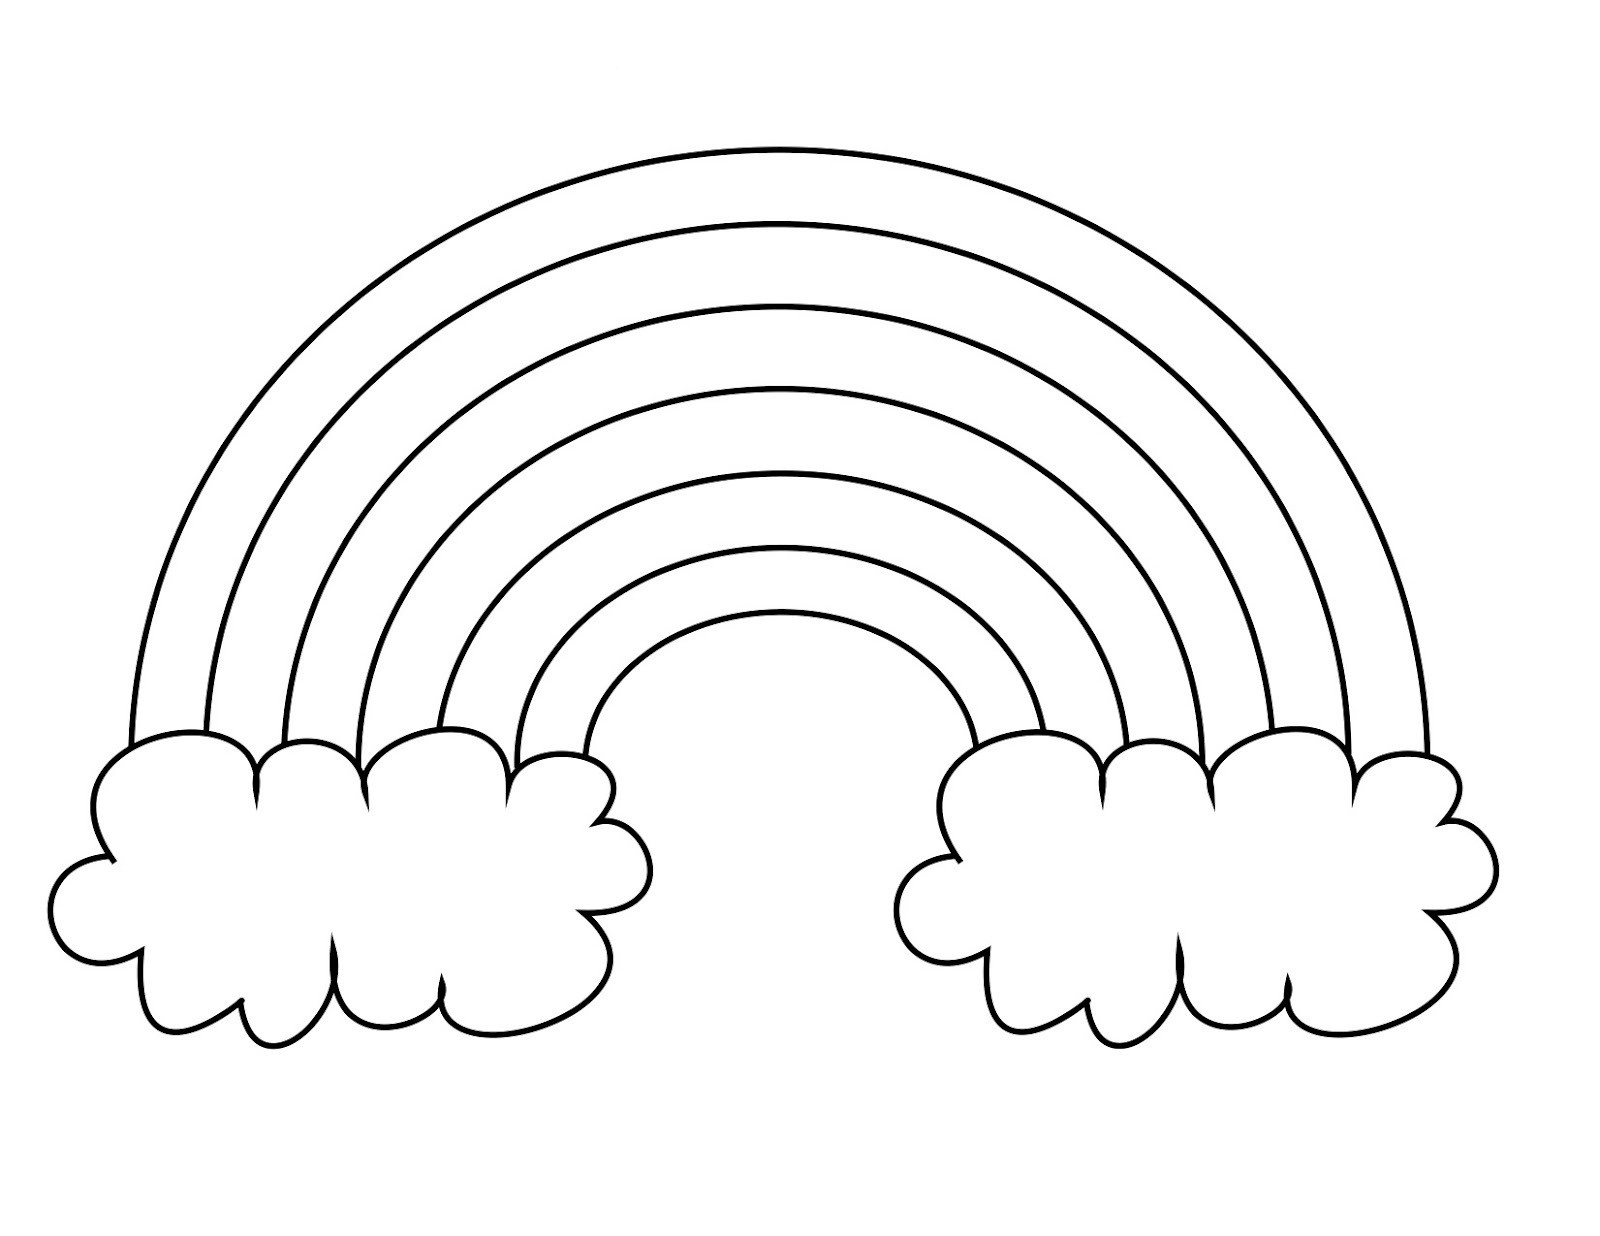 Best ideas about Rainbow Preschool Coloring Sheets . Save or Pin 14 Best of Flower Preschool Color Worksheets Now.